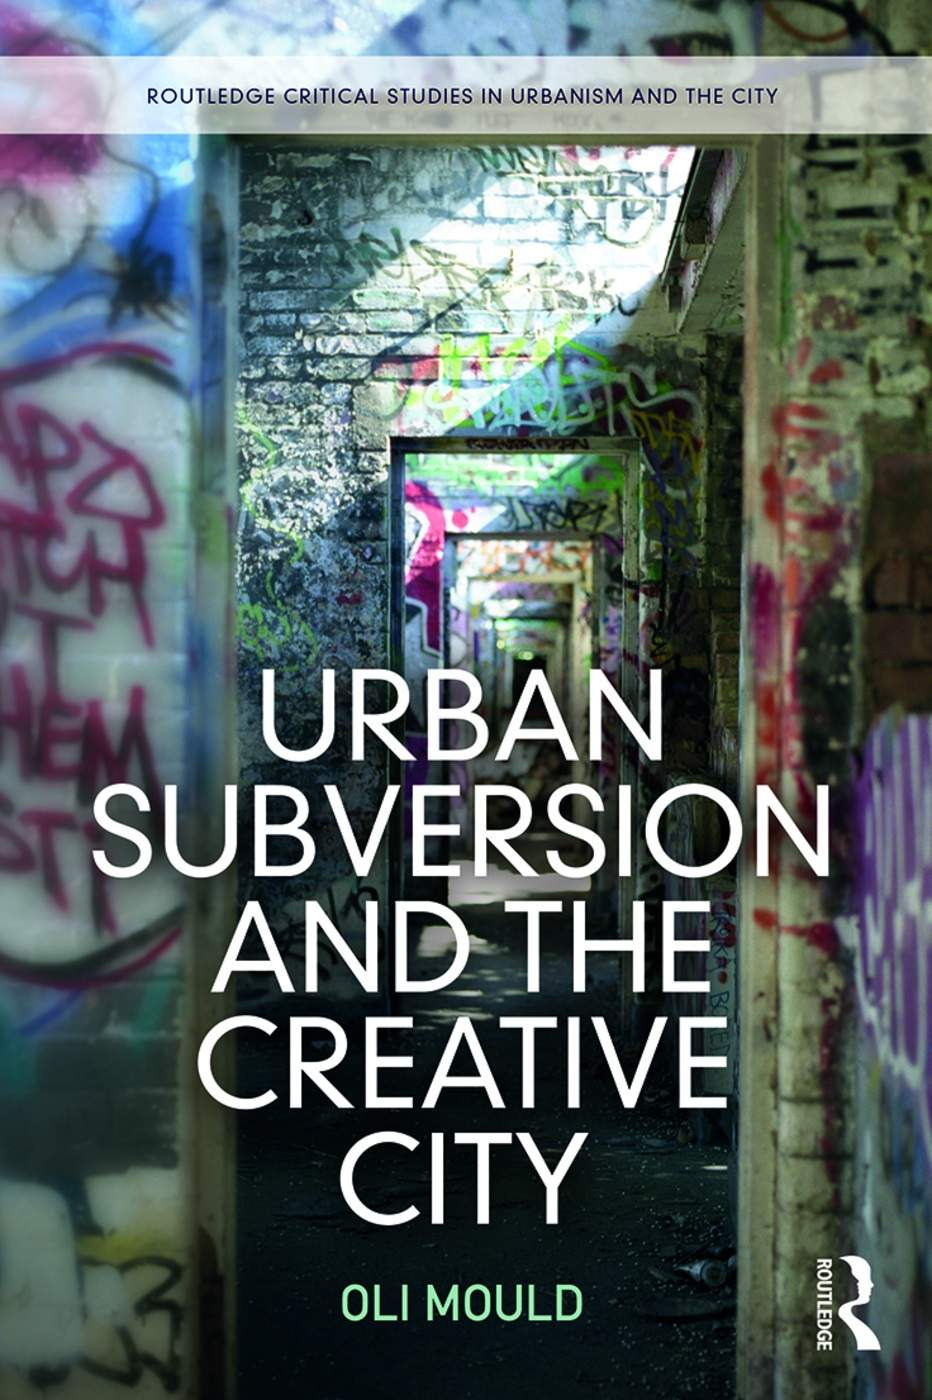 Urban Subversion and the Creative City